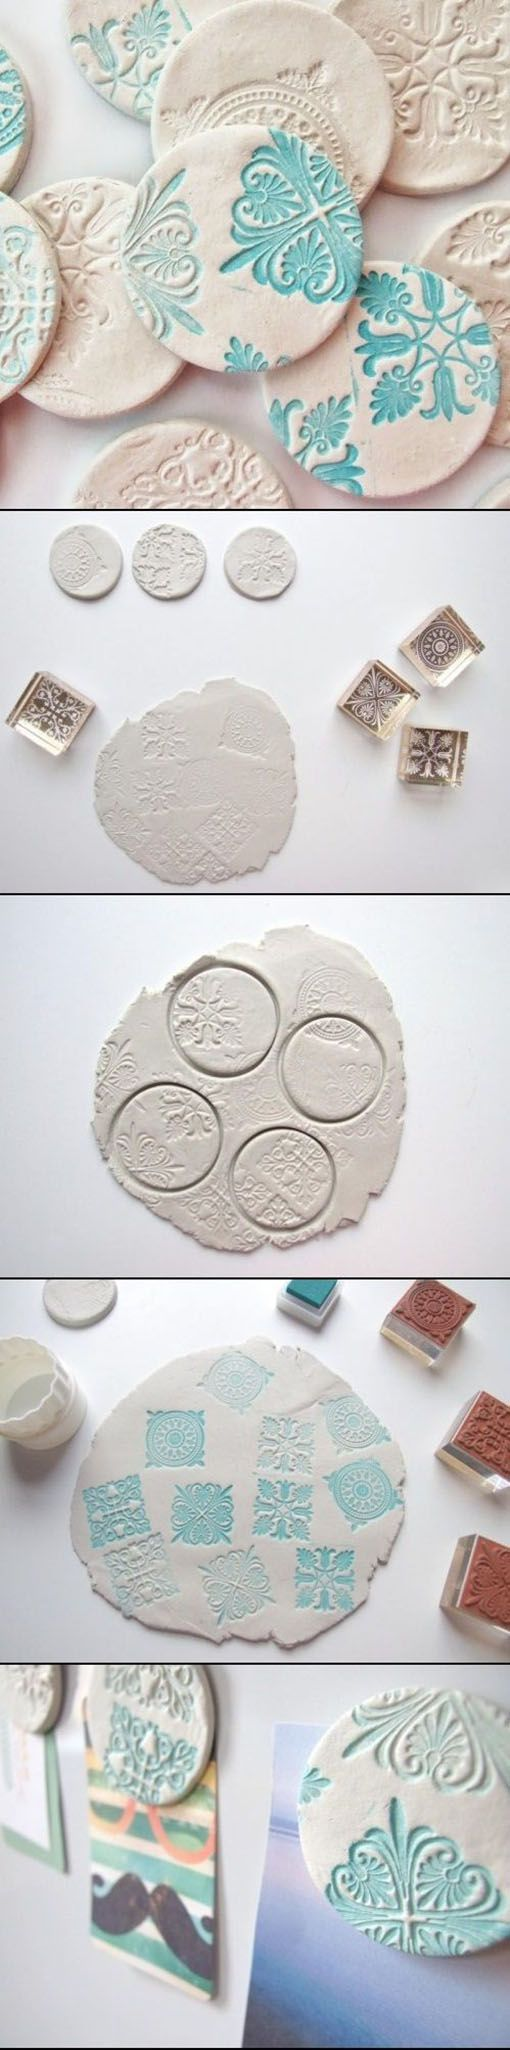 DIY Clay Magnets | DIY & Crafts Tutorials great for essential oil pendants!